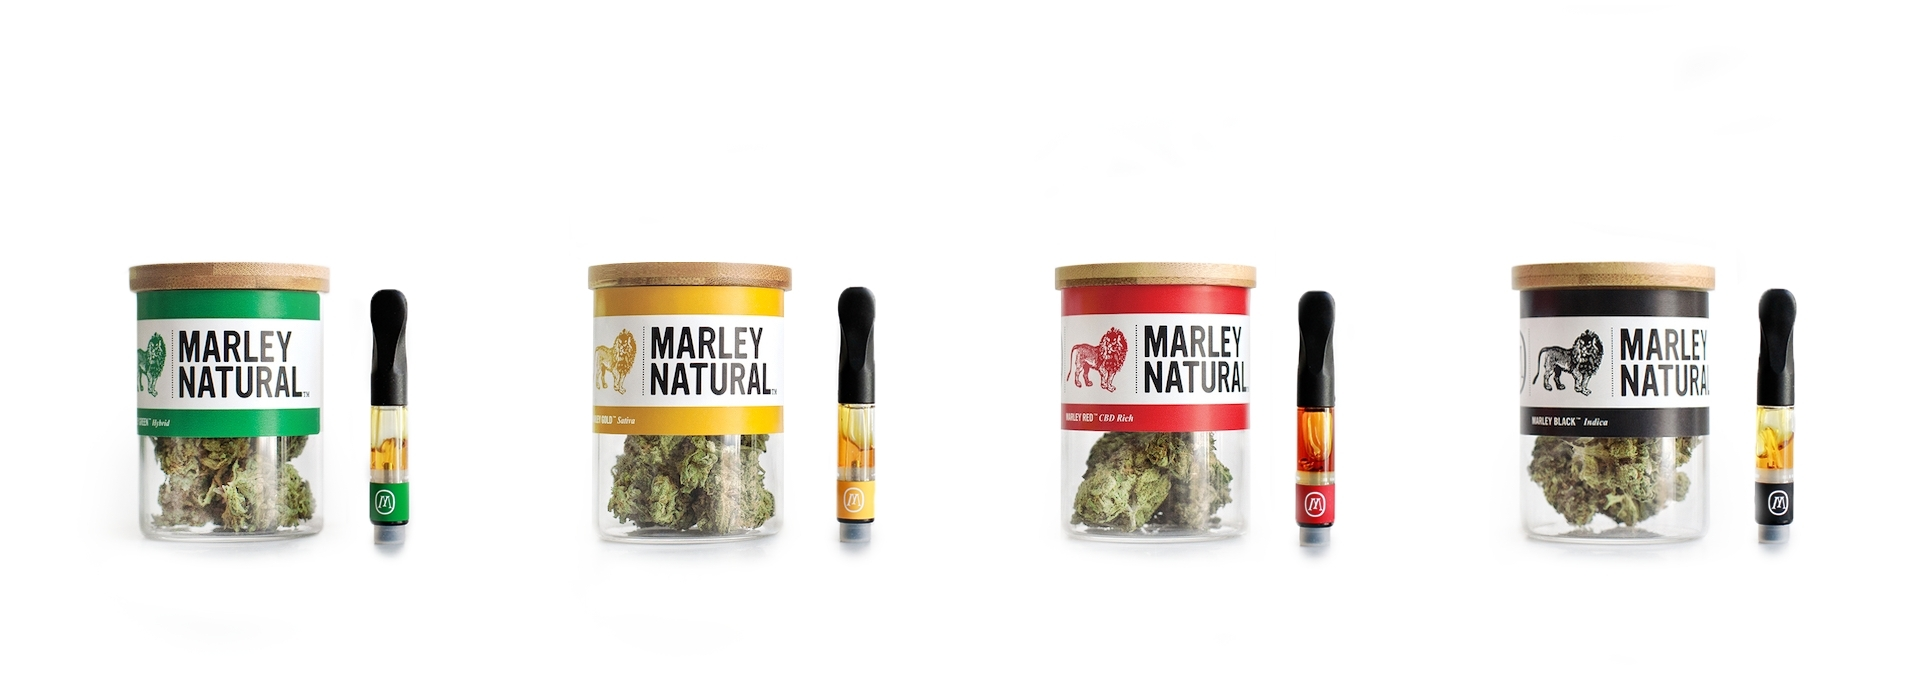 Marley Natural cannabis flower and oil are hand-selected from local farms run by experienced growers committed to sustainable growing practices. (Photo: Business Wire)